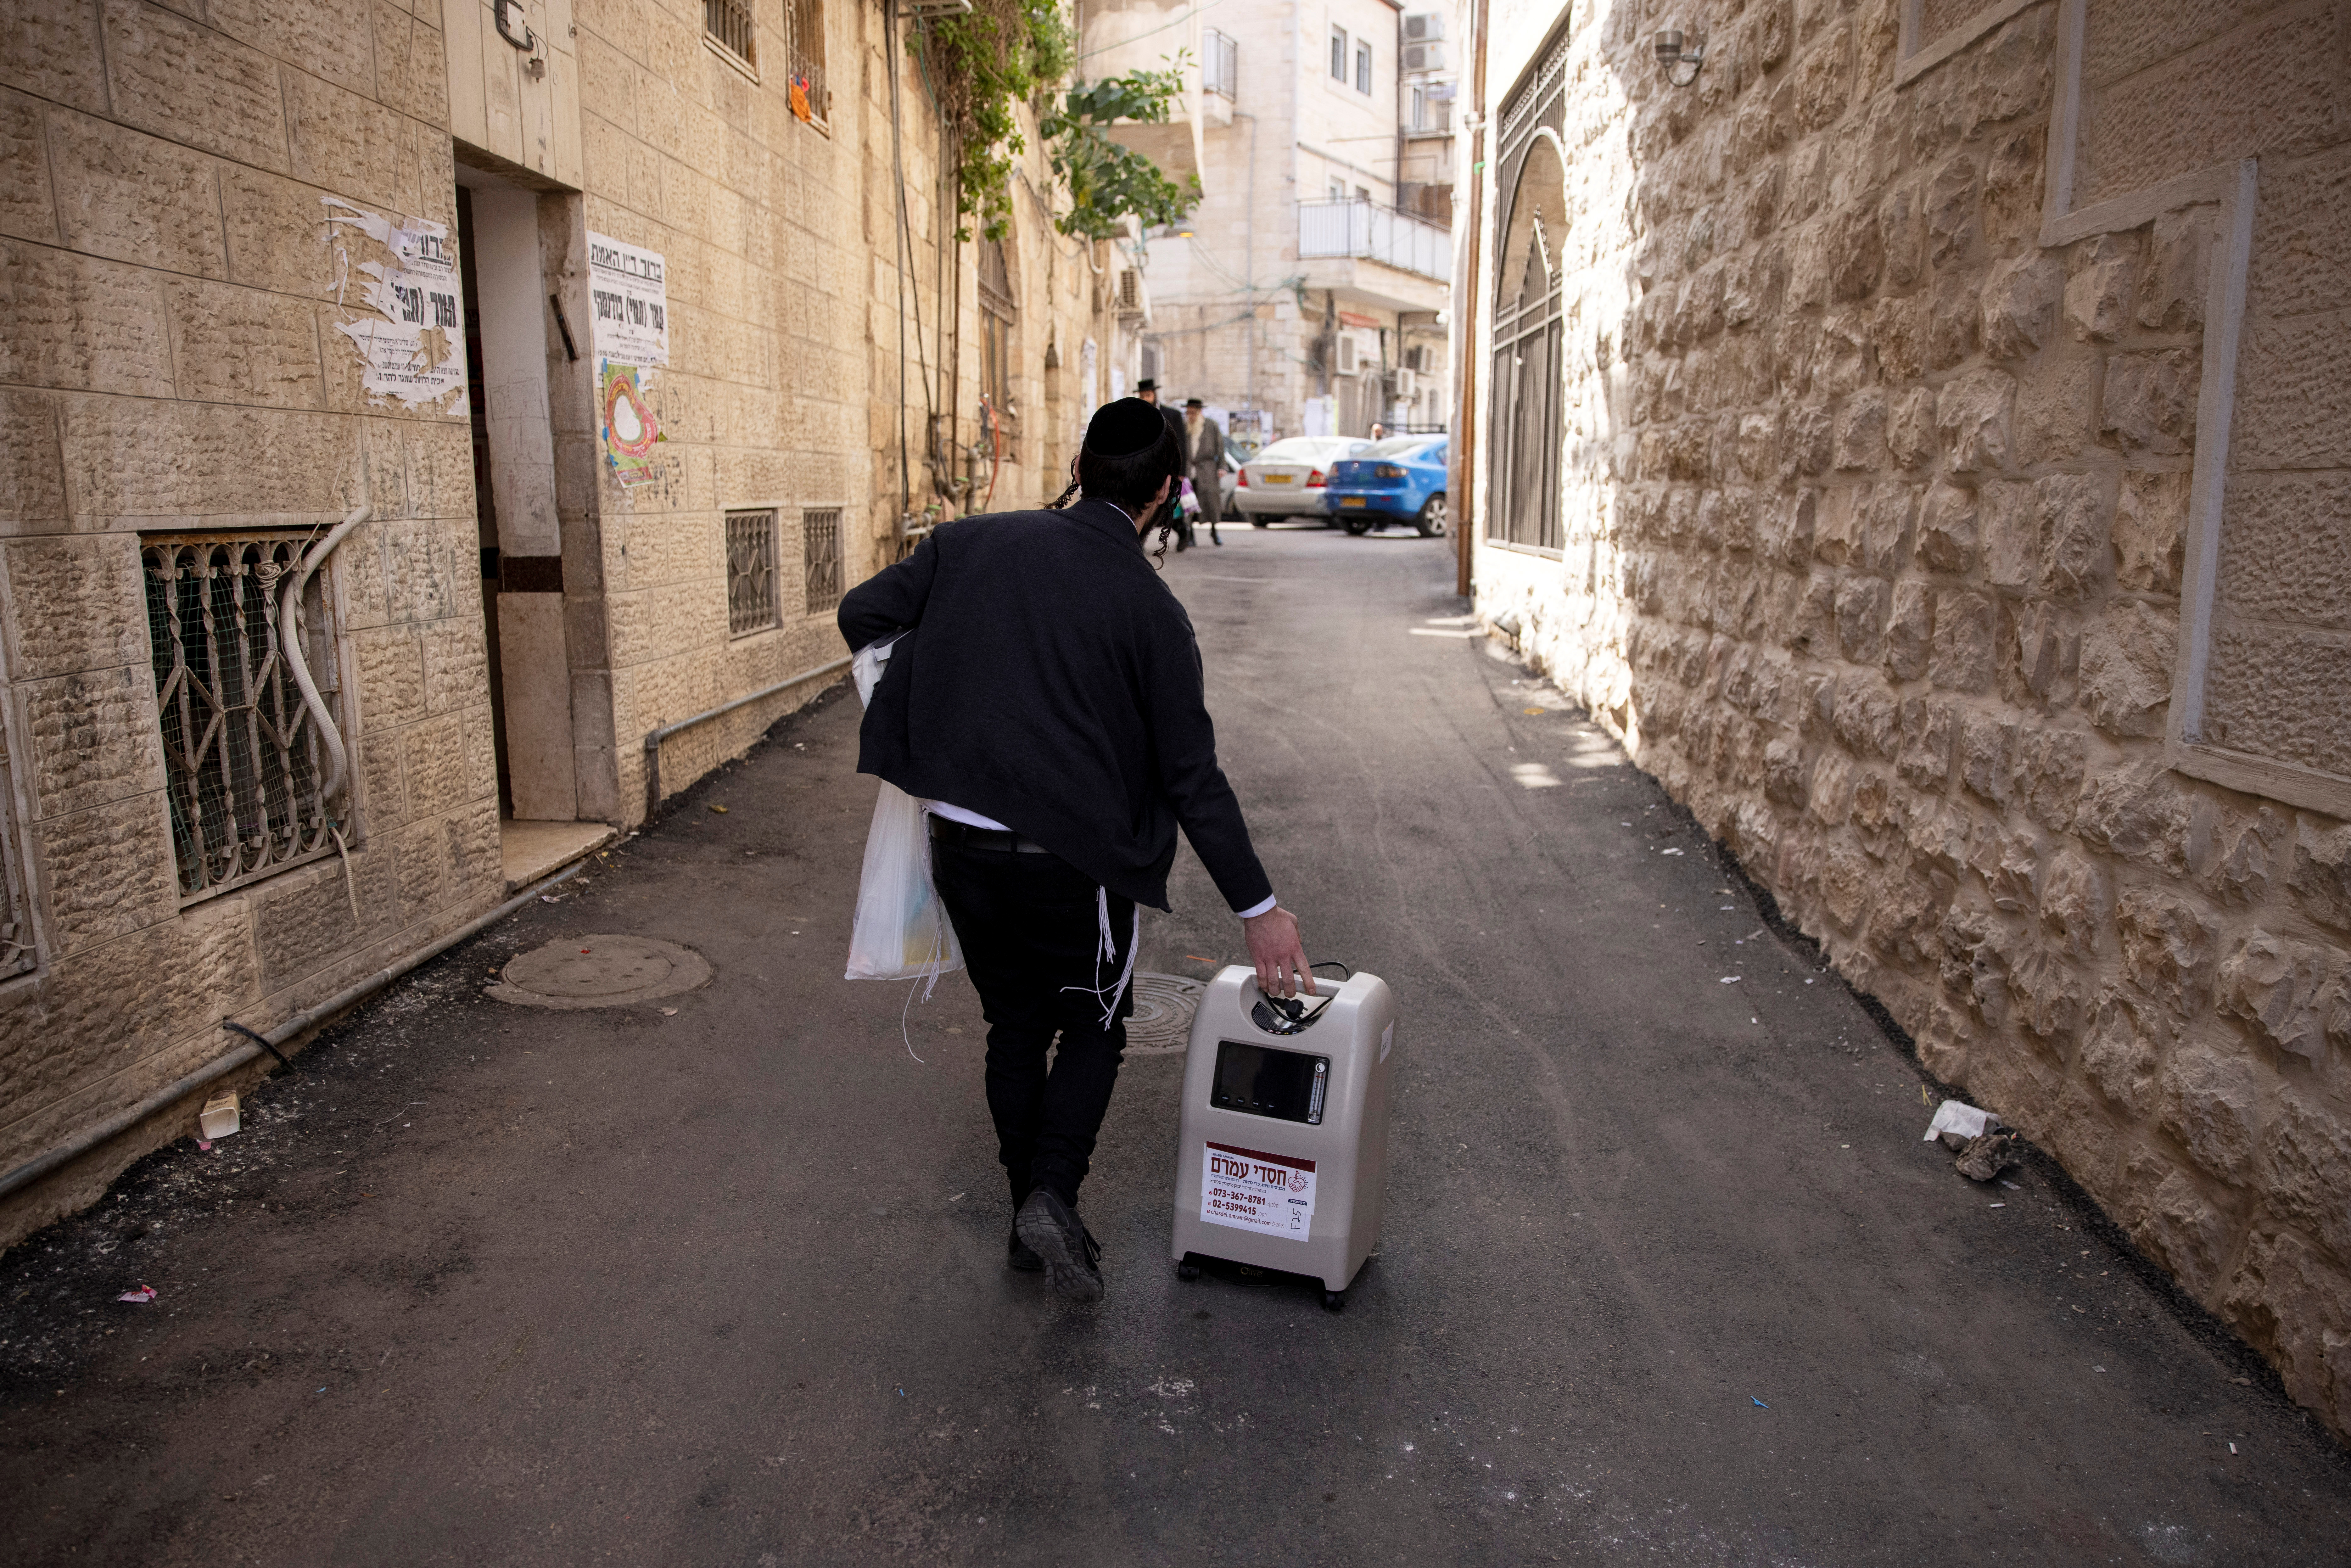 An ultra-Orthodox Jewish volunteer from Chasdei Amram, which provides home relief to people affected by the coronavirus coronavirus disease (COVID-19), carries a home oxygen concentrator as he makes his way in Jerusalem March 2, 2021. Picture taken March 2, 2021. REUTERS/Ronen Zvulun